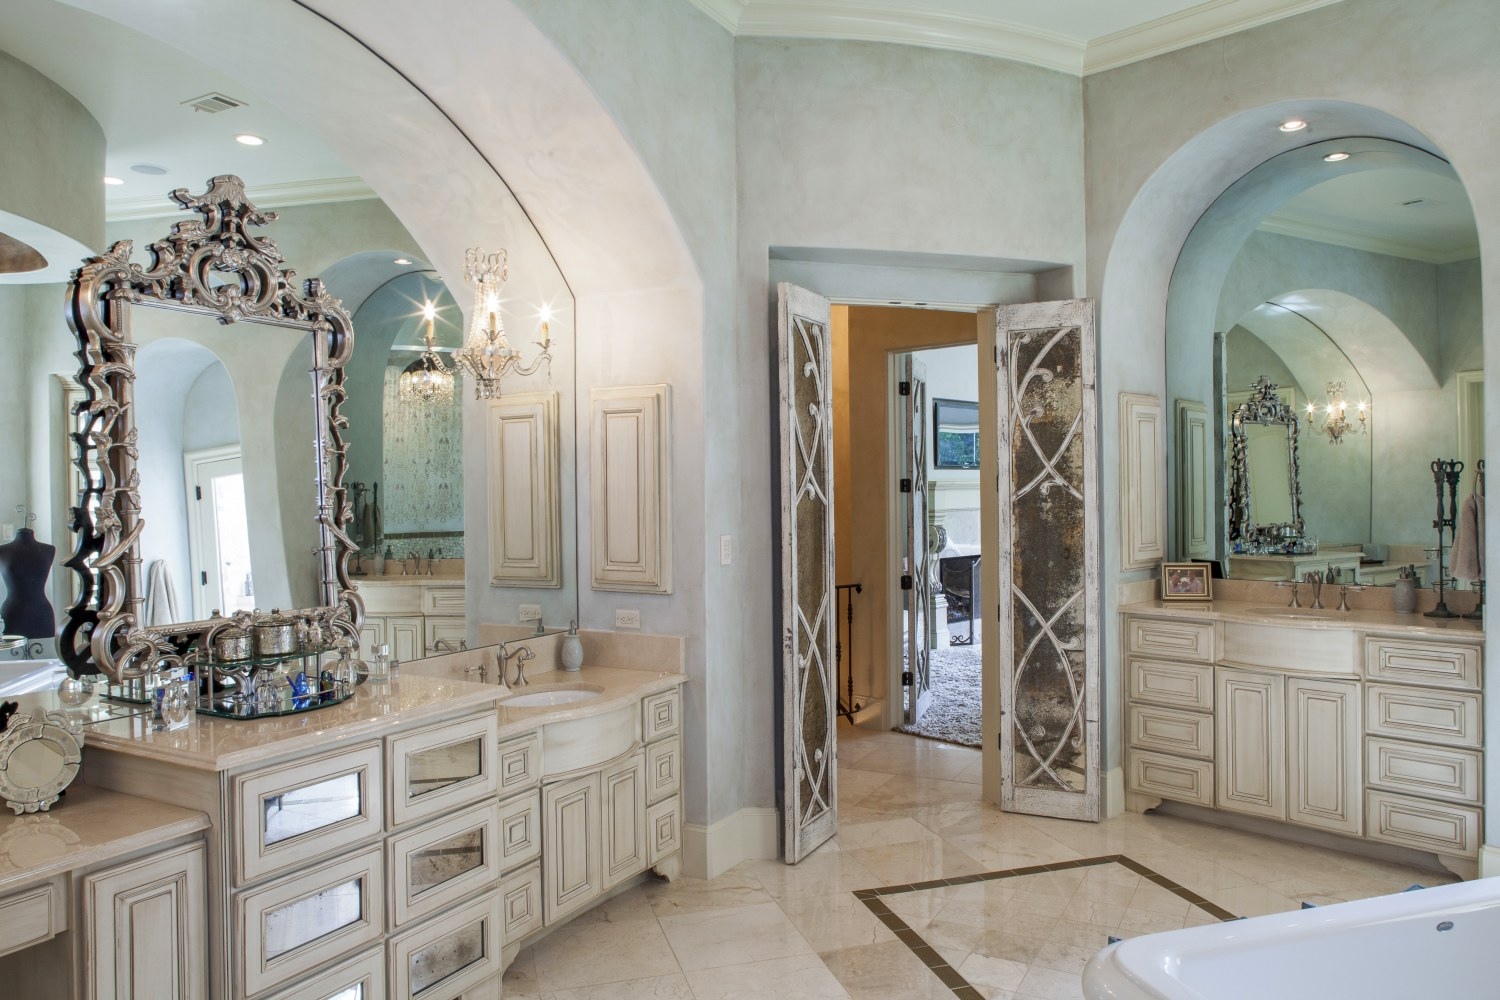 Architecture Home Eclectic old world bathroom vanity